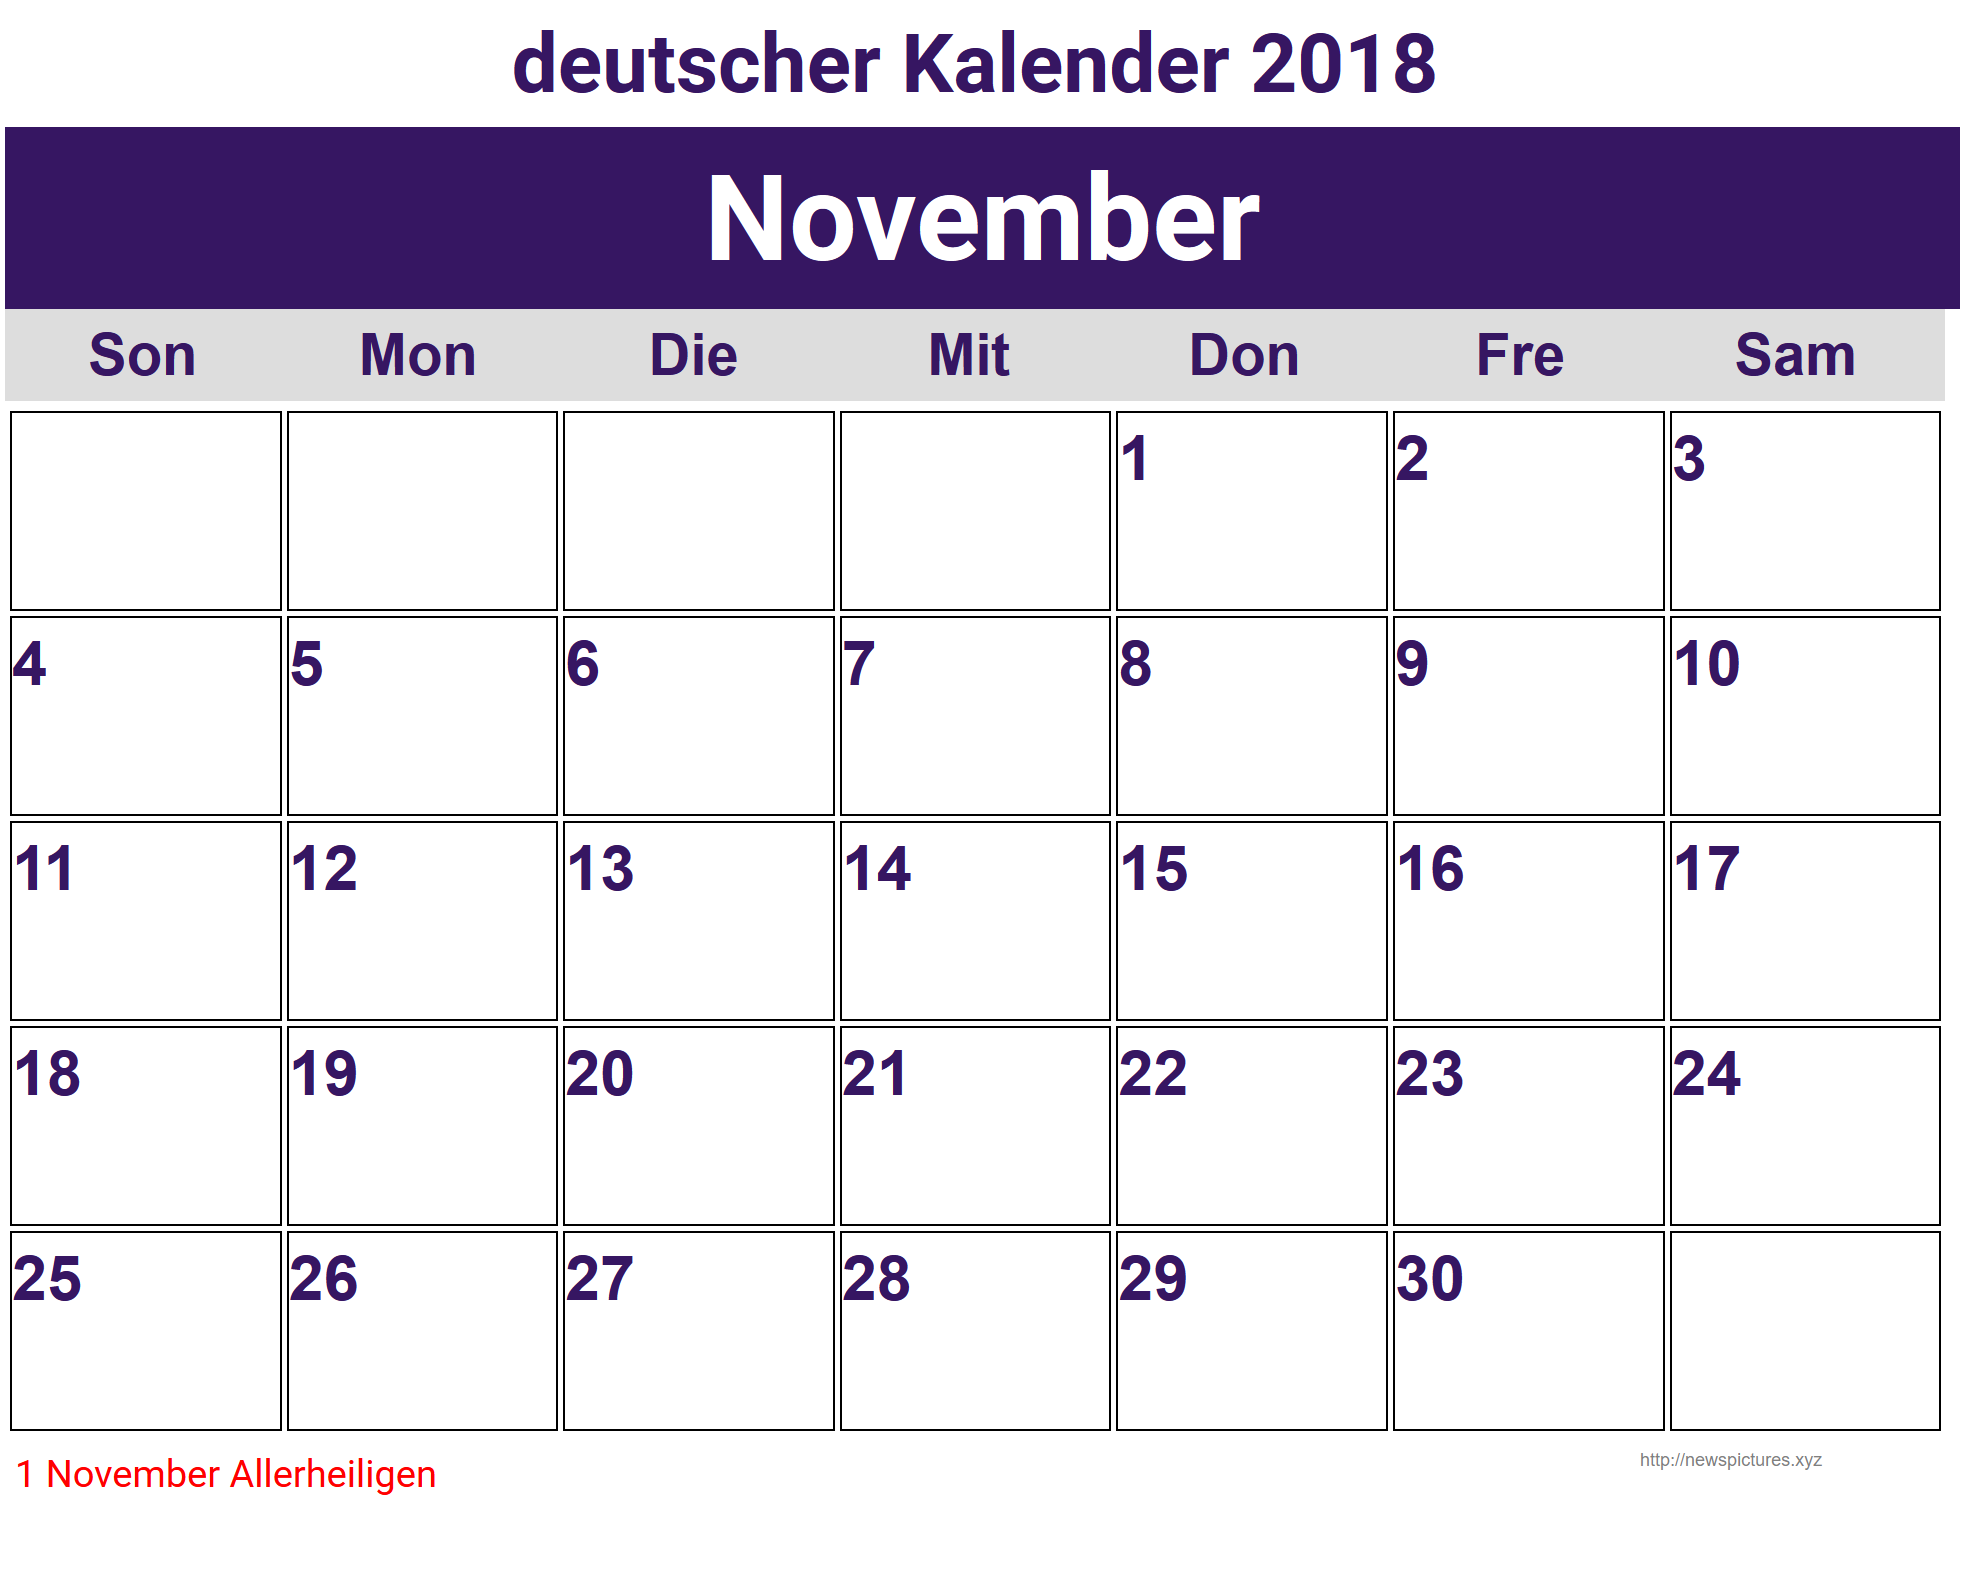 November Deutscher Kalender 2018